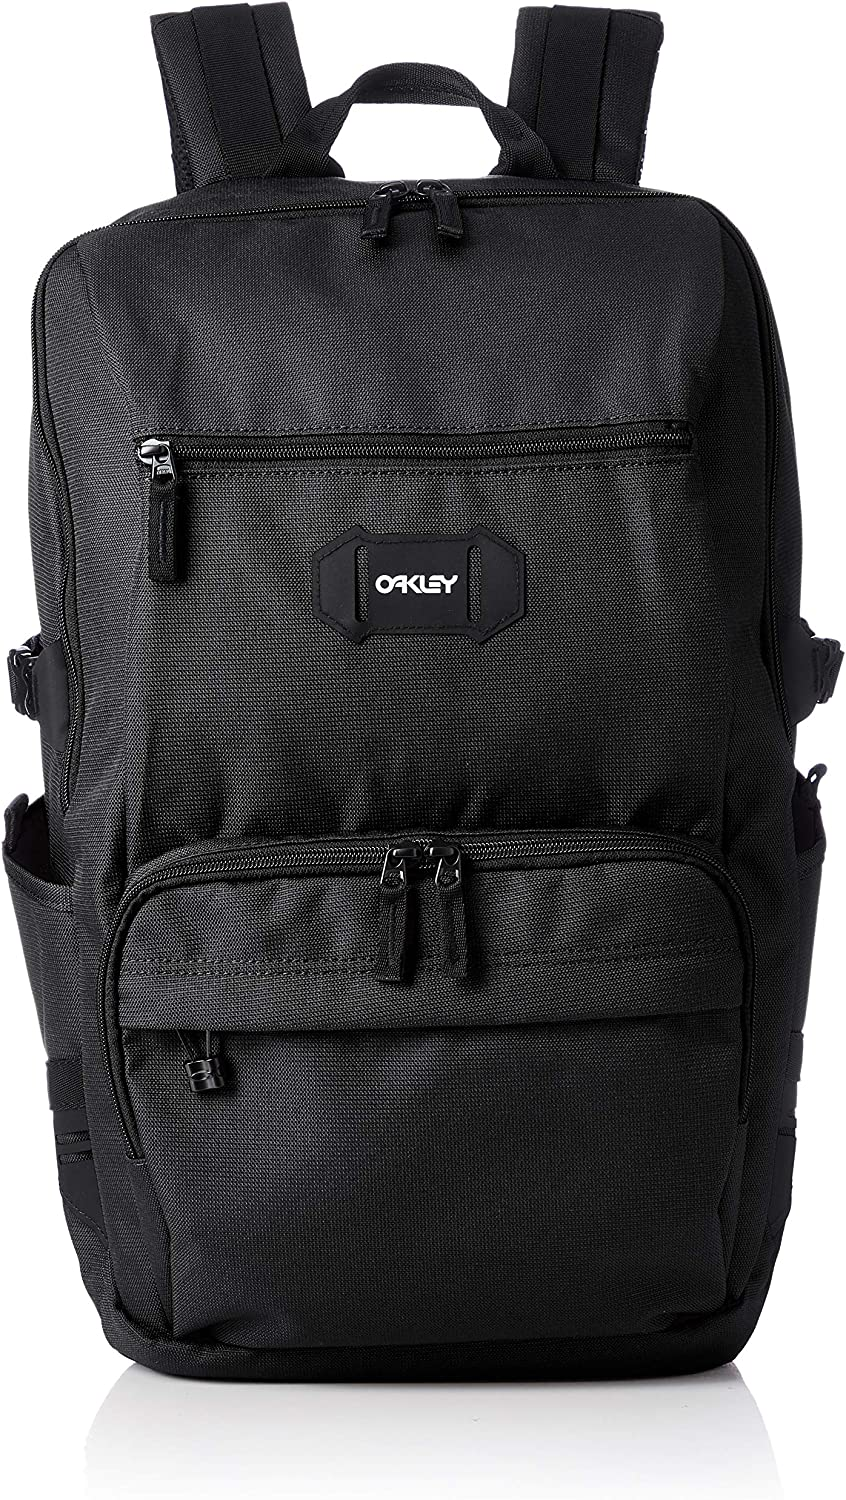 Oakley Men's Street Pocket Backpack